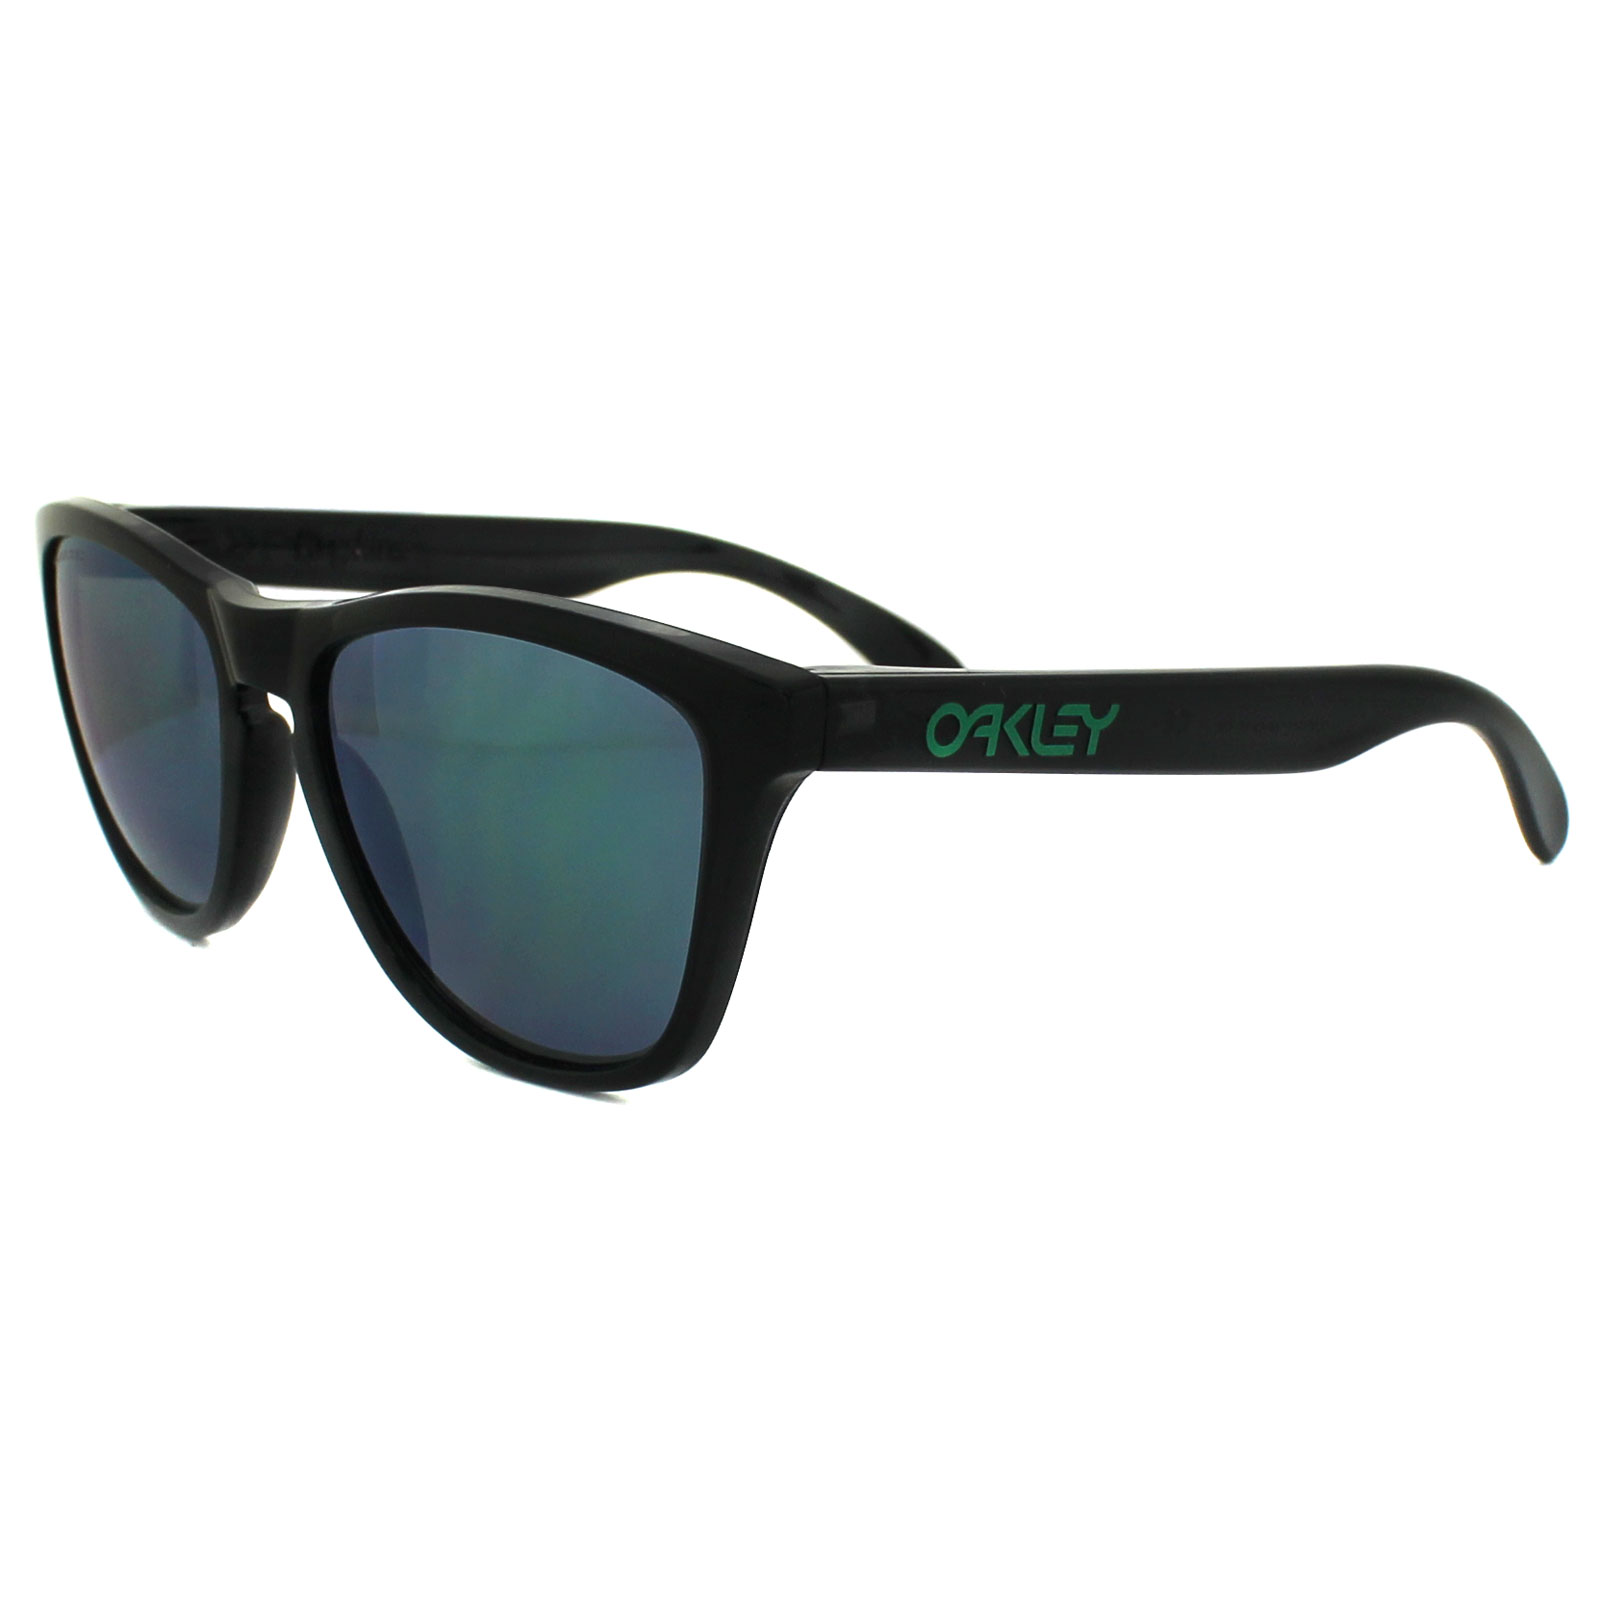 oakley glasses uk deals  oakley frogskins sunglasses